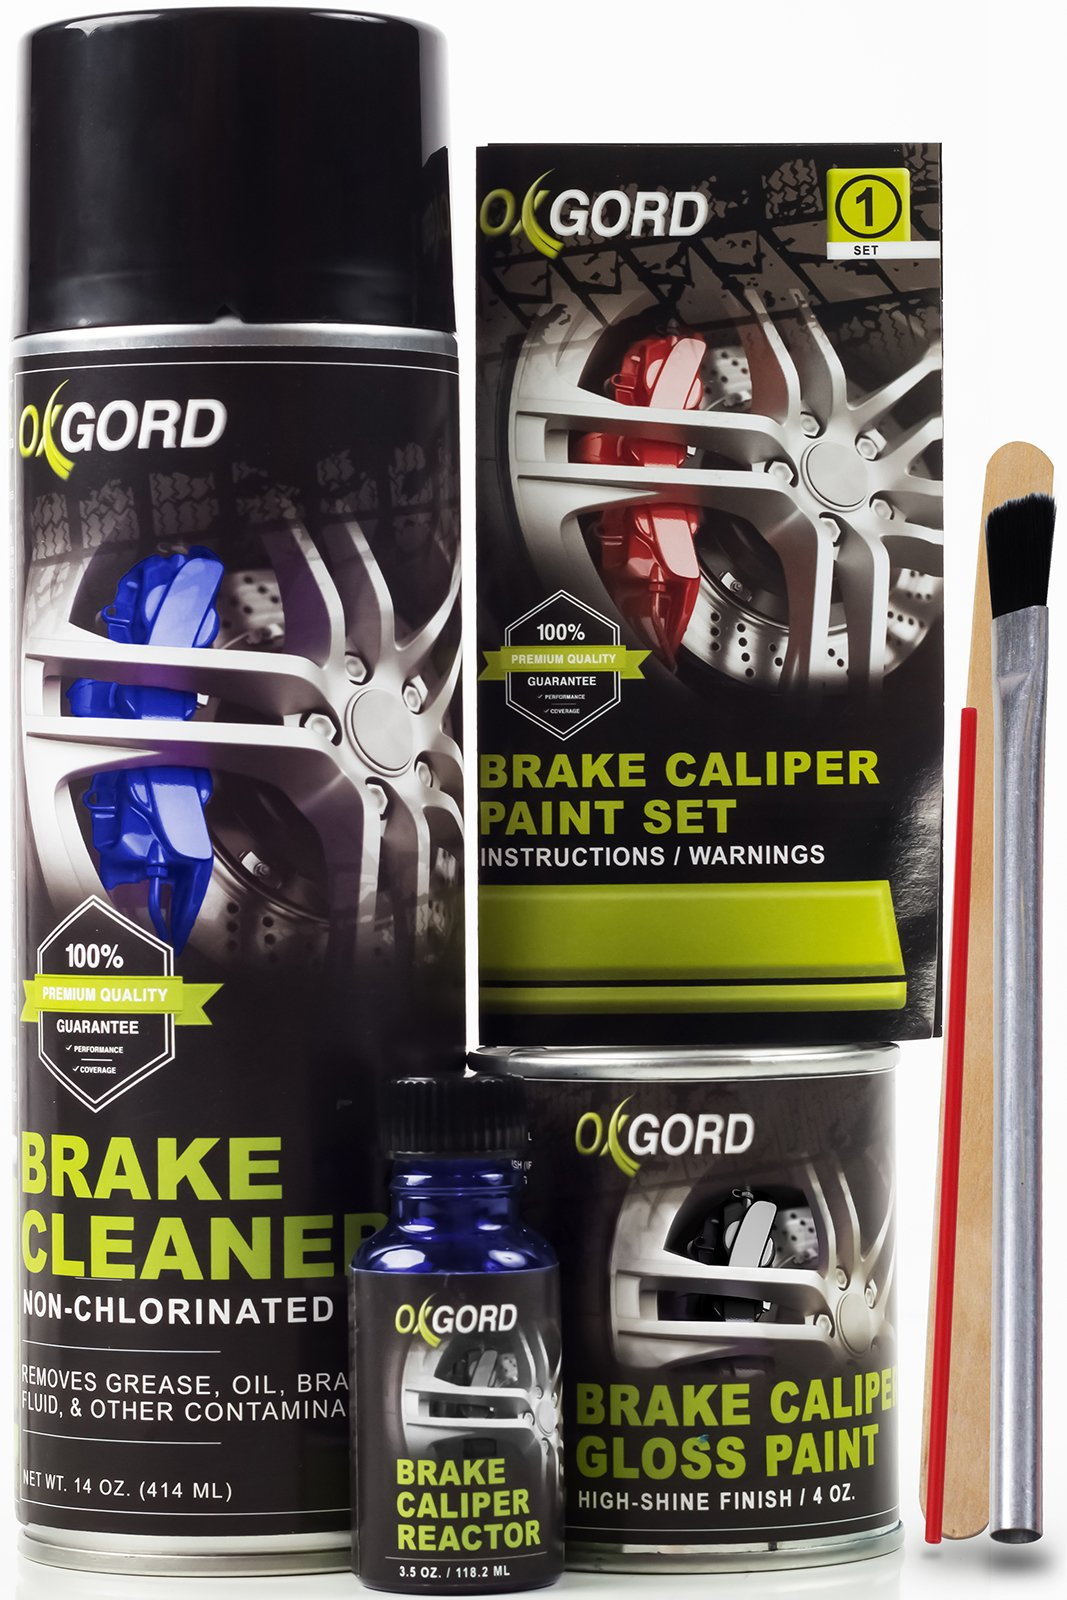 OxGord Brake Caliper Paint Kit - High Heat 980-Degree F, Two-Part Gloss Paint with Cleaning Spray and Brush (Blue)